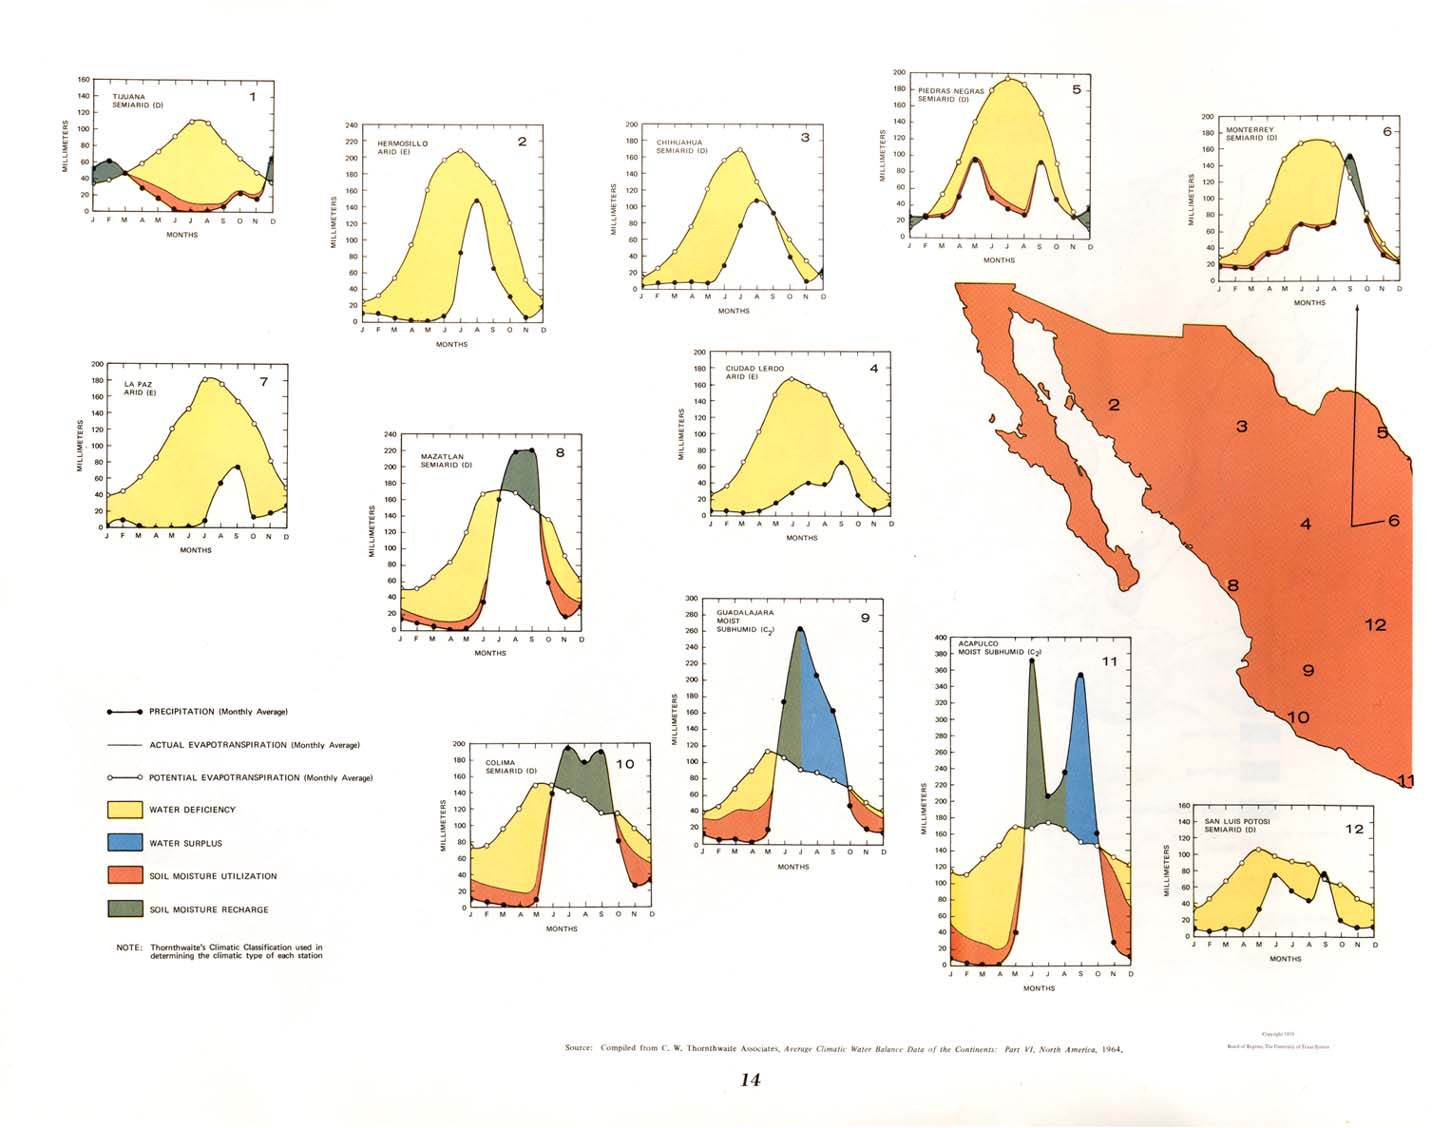 Climatic Water Balance Diagram - West, Mexico